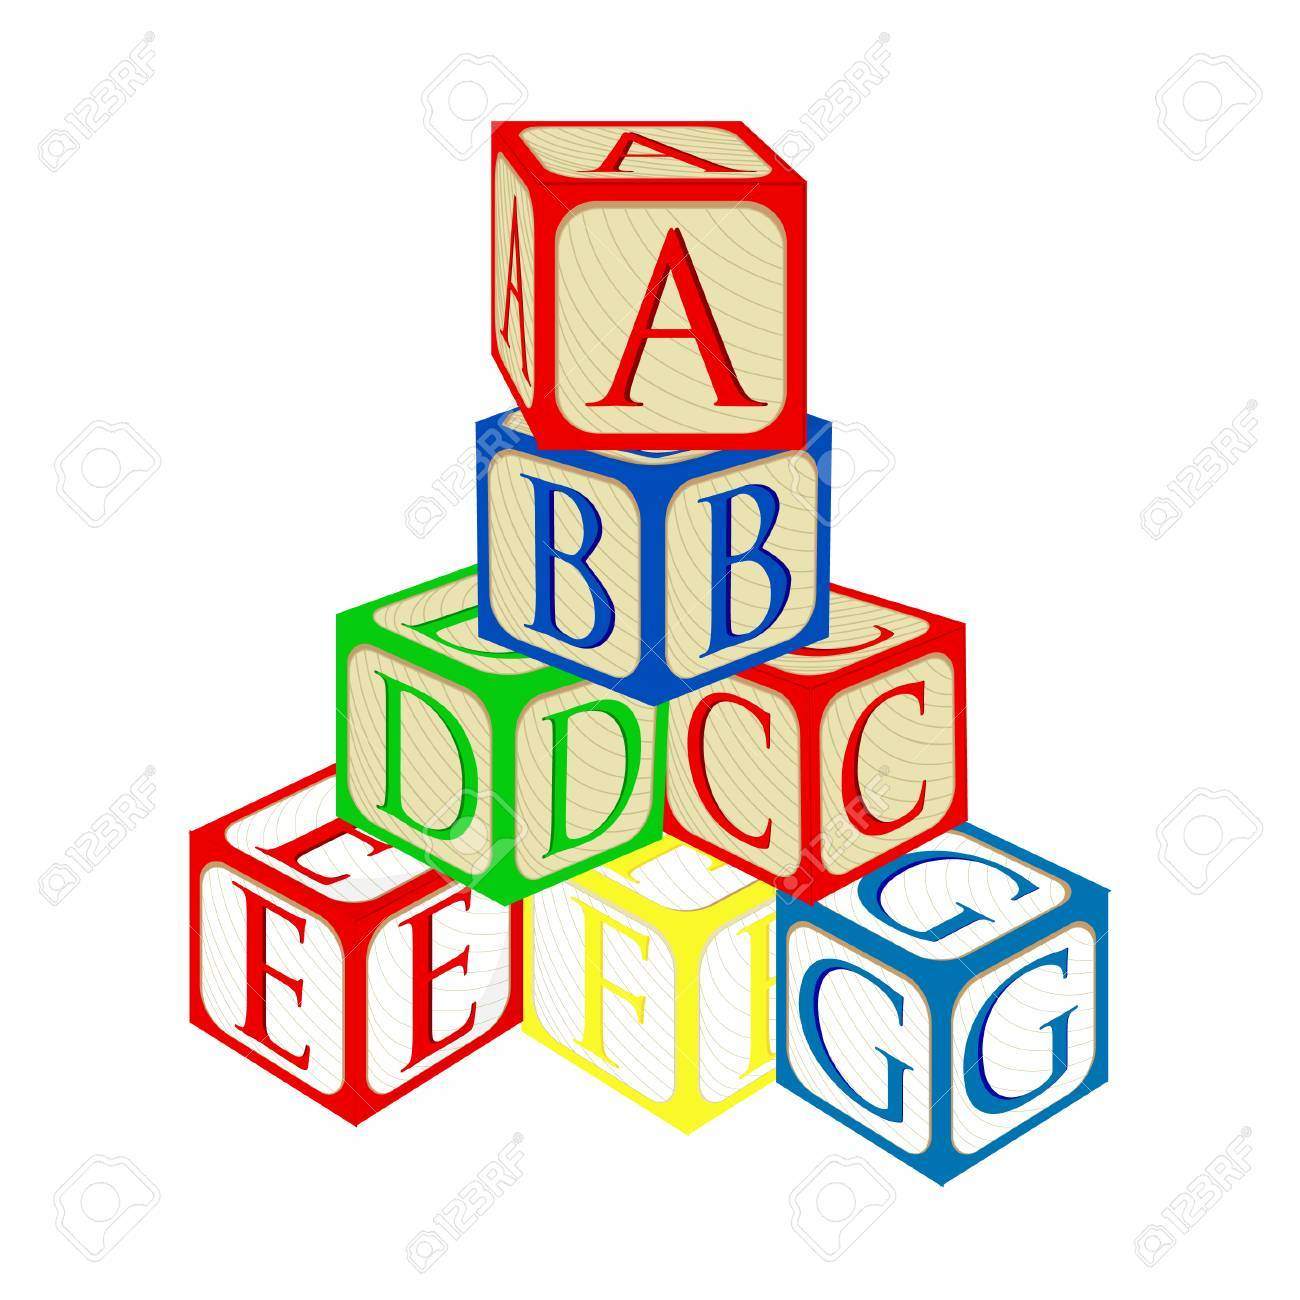 Baby Building Blocks Clipart.